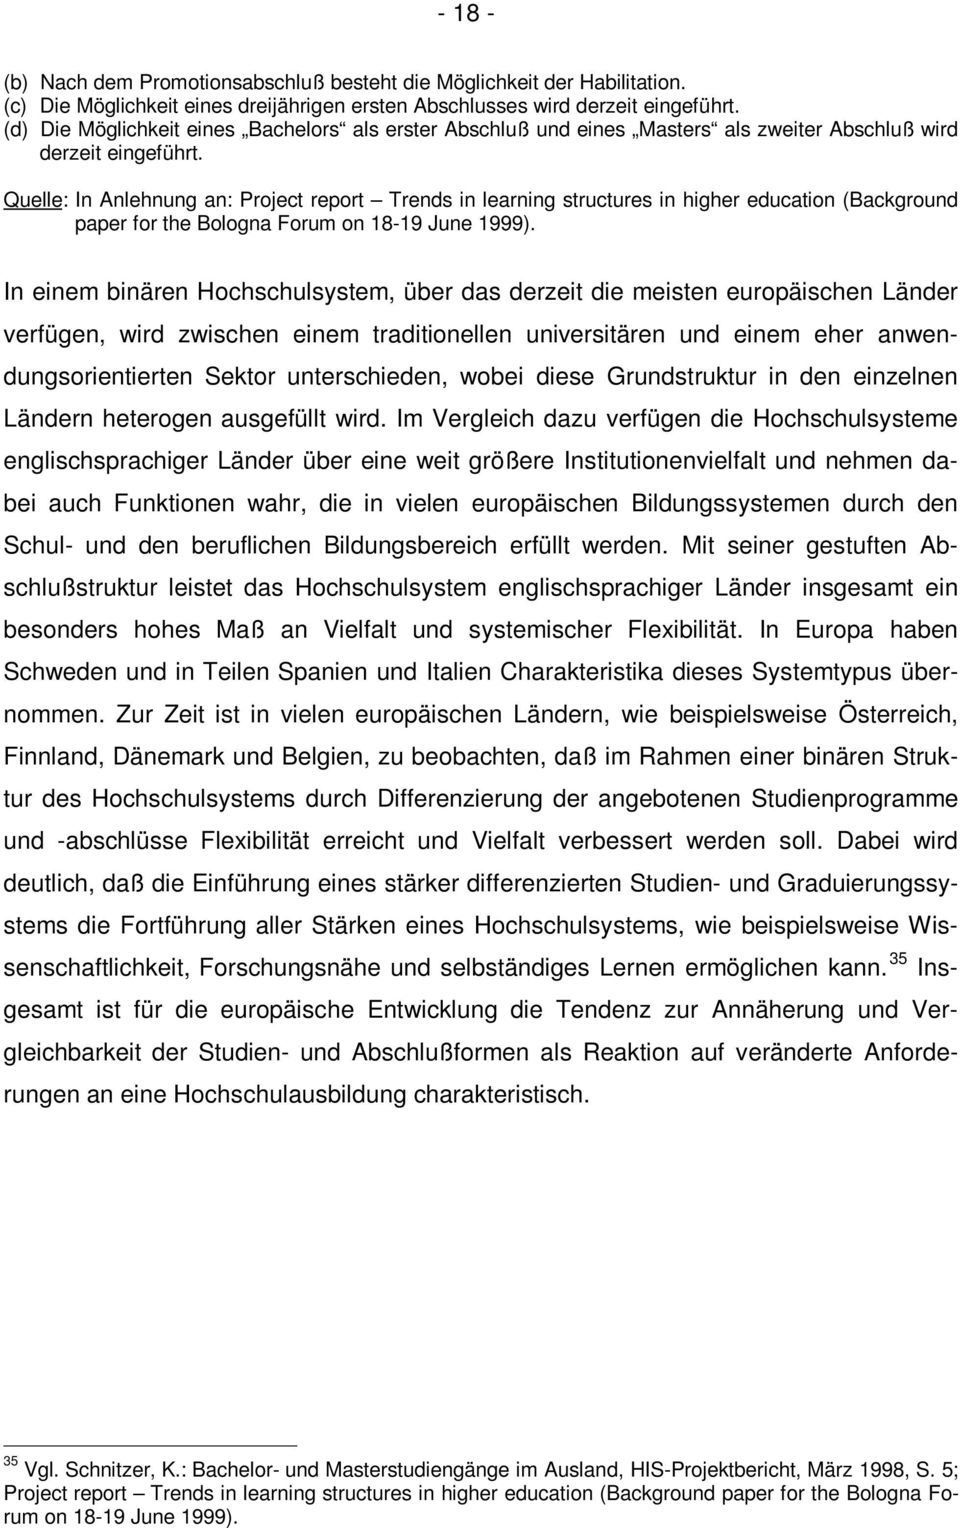 Quelle: In Anlehnung an: Project report Trends in learning structures in higher education (Background paper for the Bologna Forum on 18-19 June 1999).